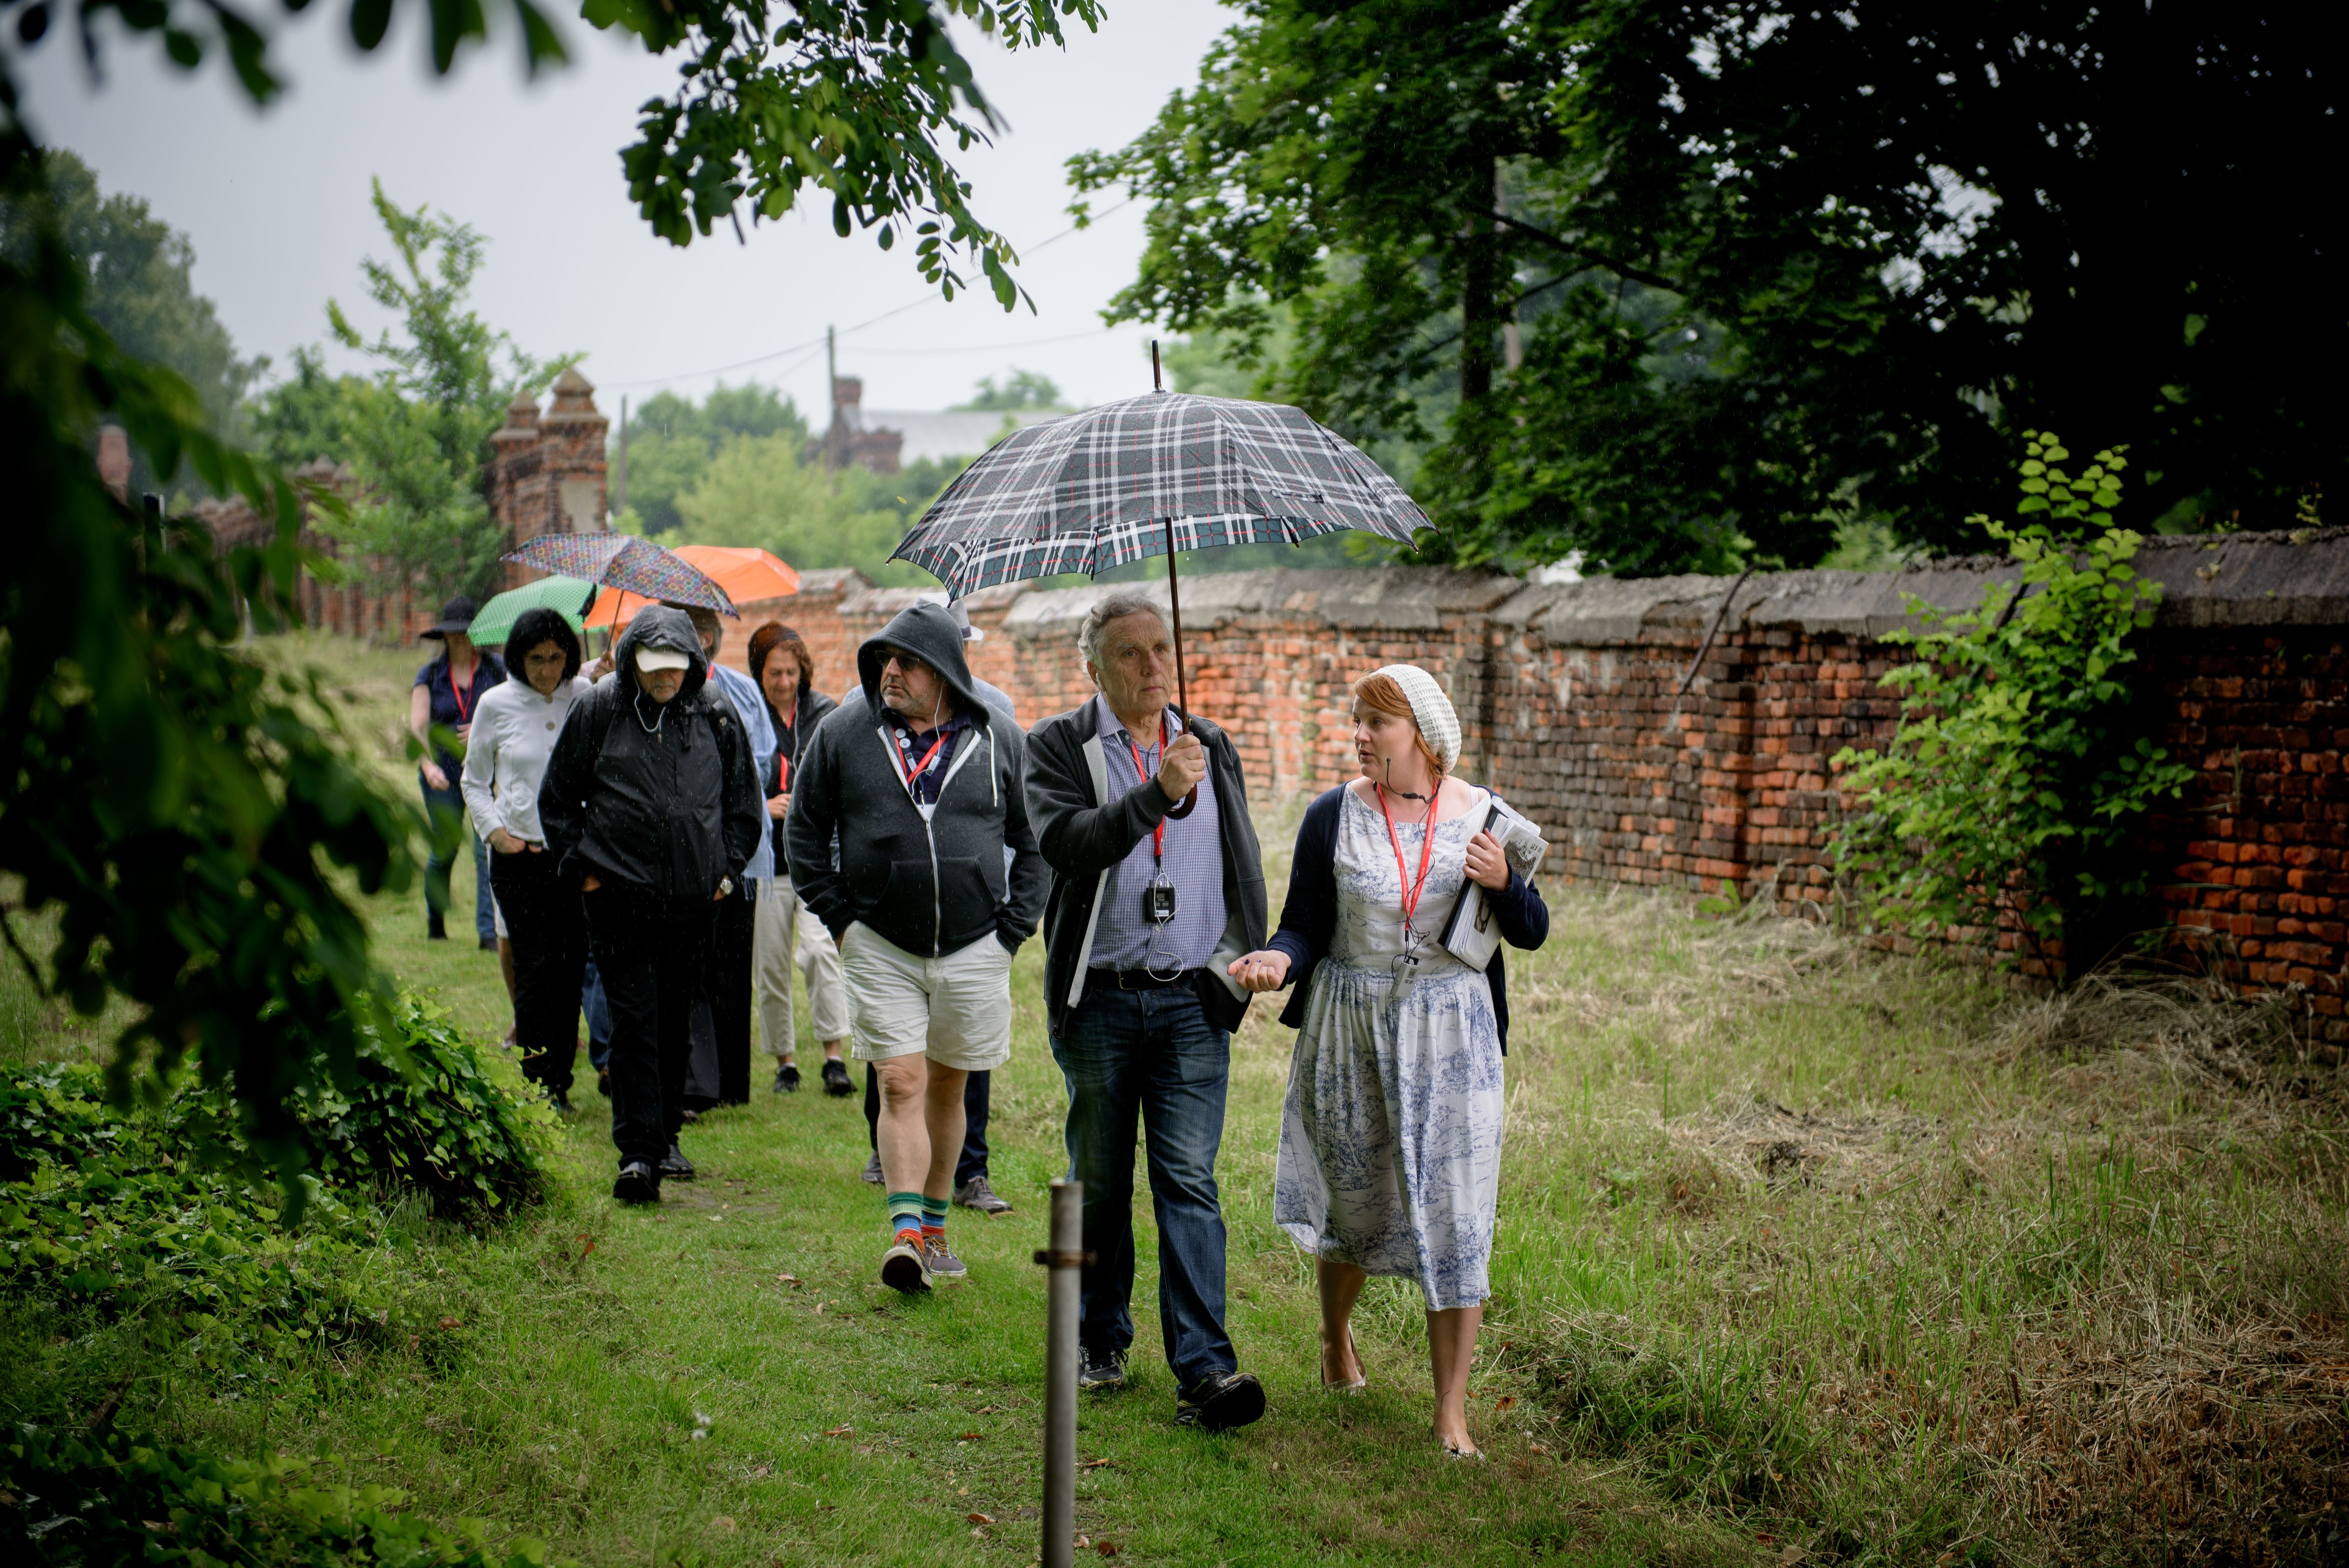 Moses Libitzky and a guide lead participants from the East Bay Federation trip through the Jewish cemetery on Lodz, Poland. (Photo/Courtesy Taube Philanthropies-Maciek Jazwiecki)